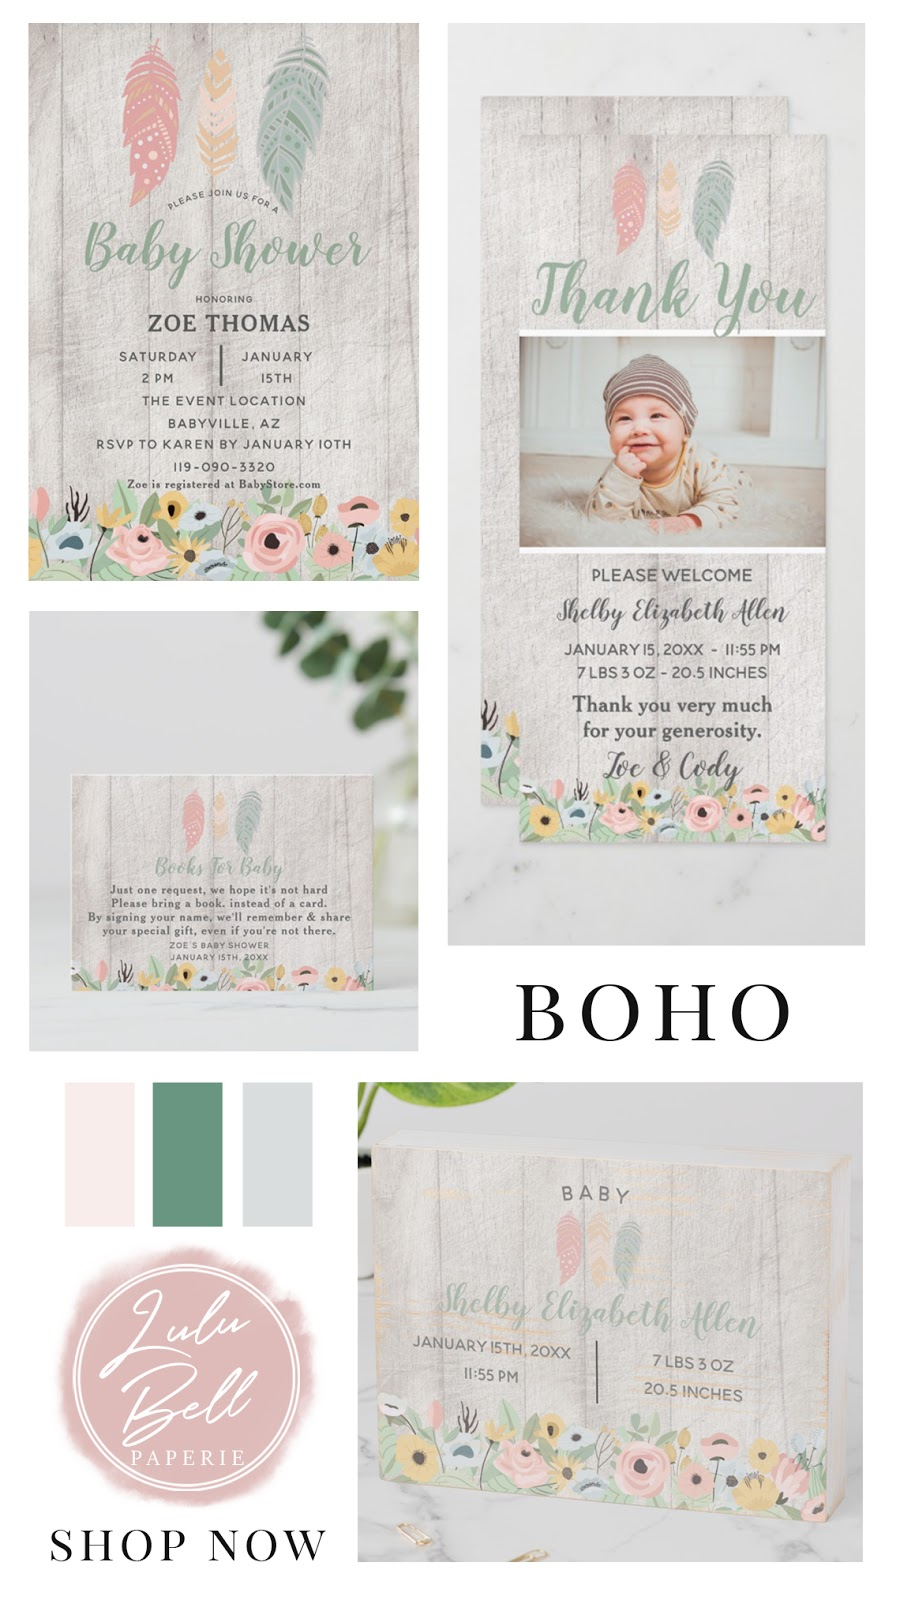 Coordinating Collection of Boho Baby Nursery Decor, Shower Invitations Party Suite, and Paint Color Palettes for Your Baby Girl. With Feathers, Deer, Flowers, Wood, and Birds. In Pink, Blush, Green, and Pale Gray,